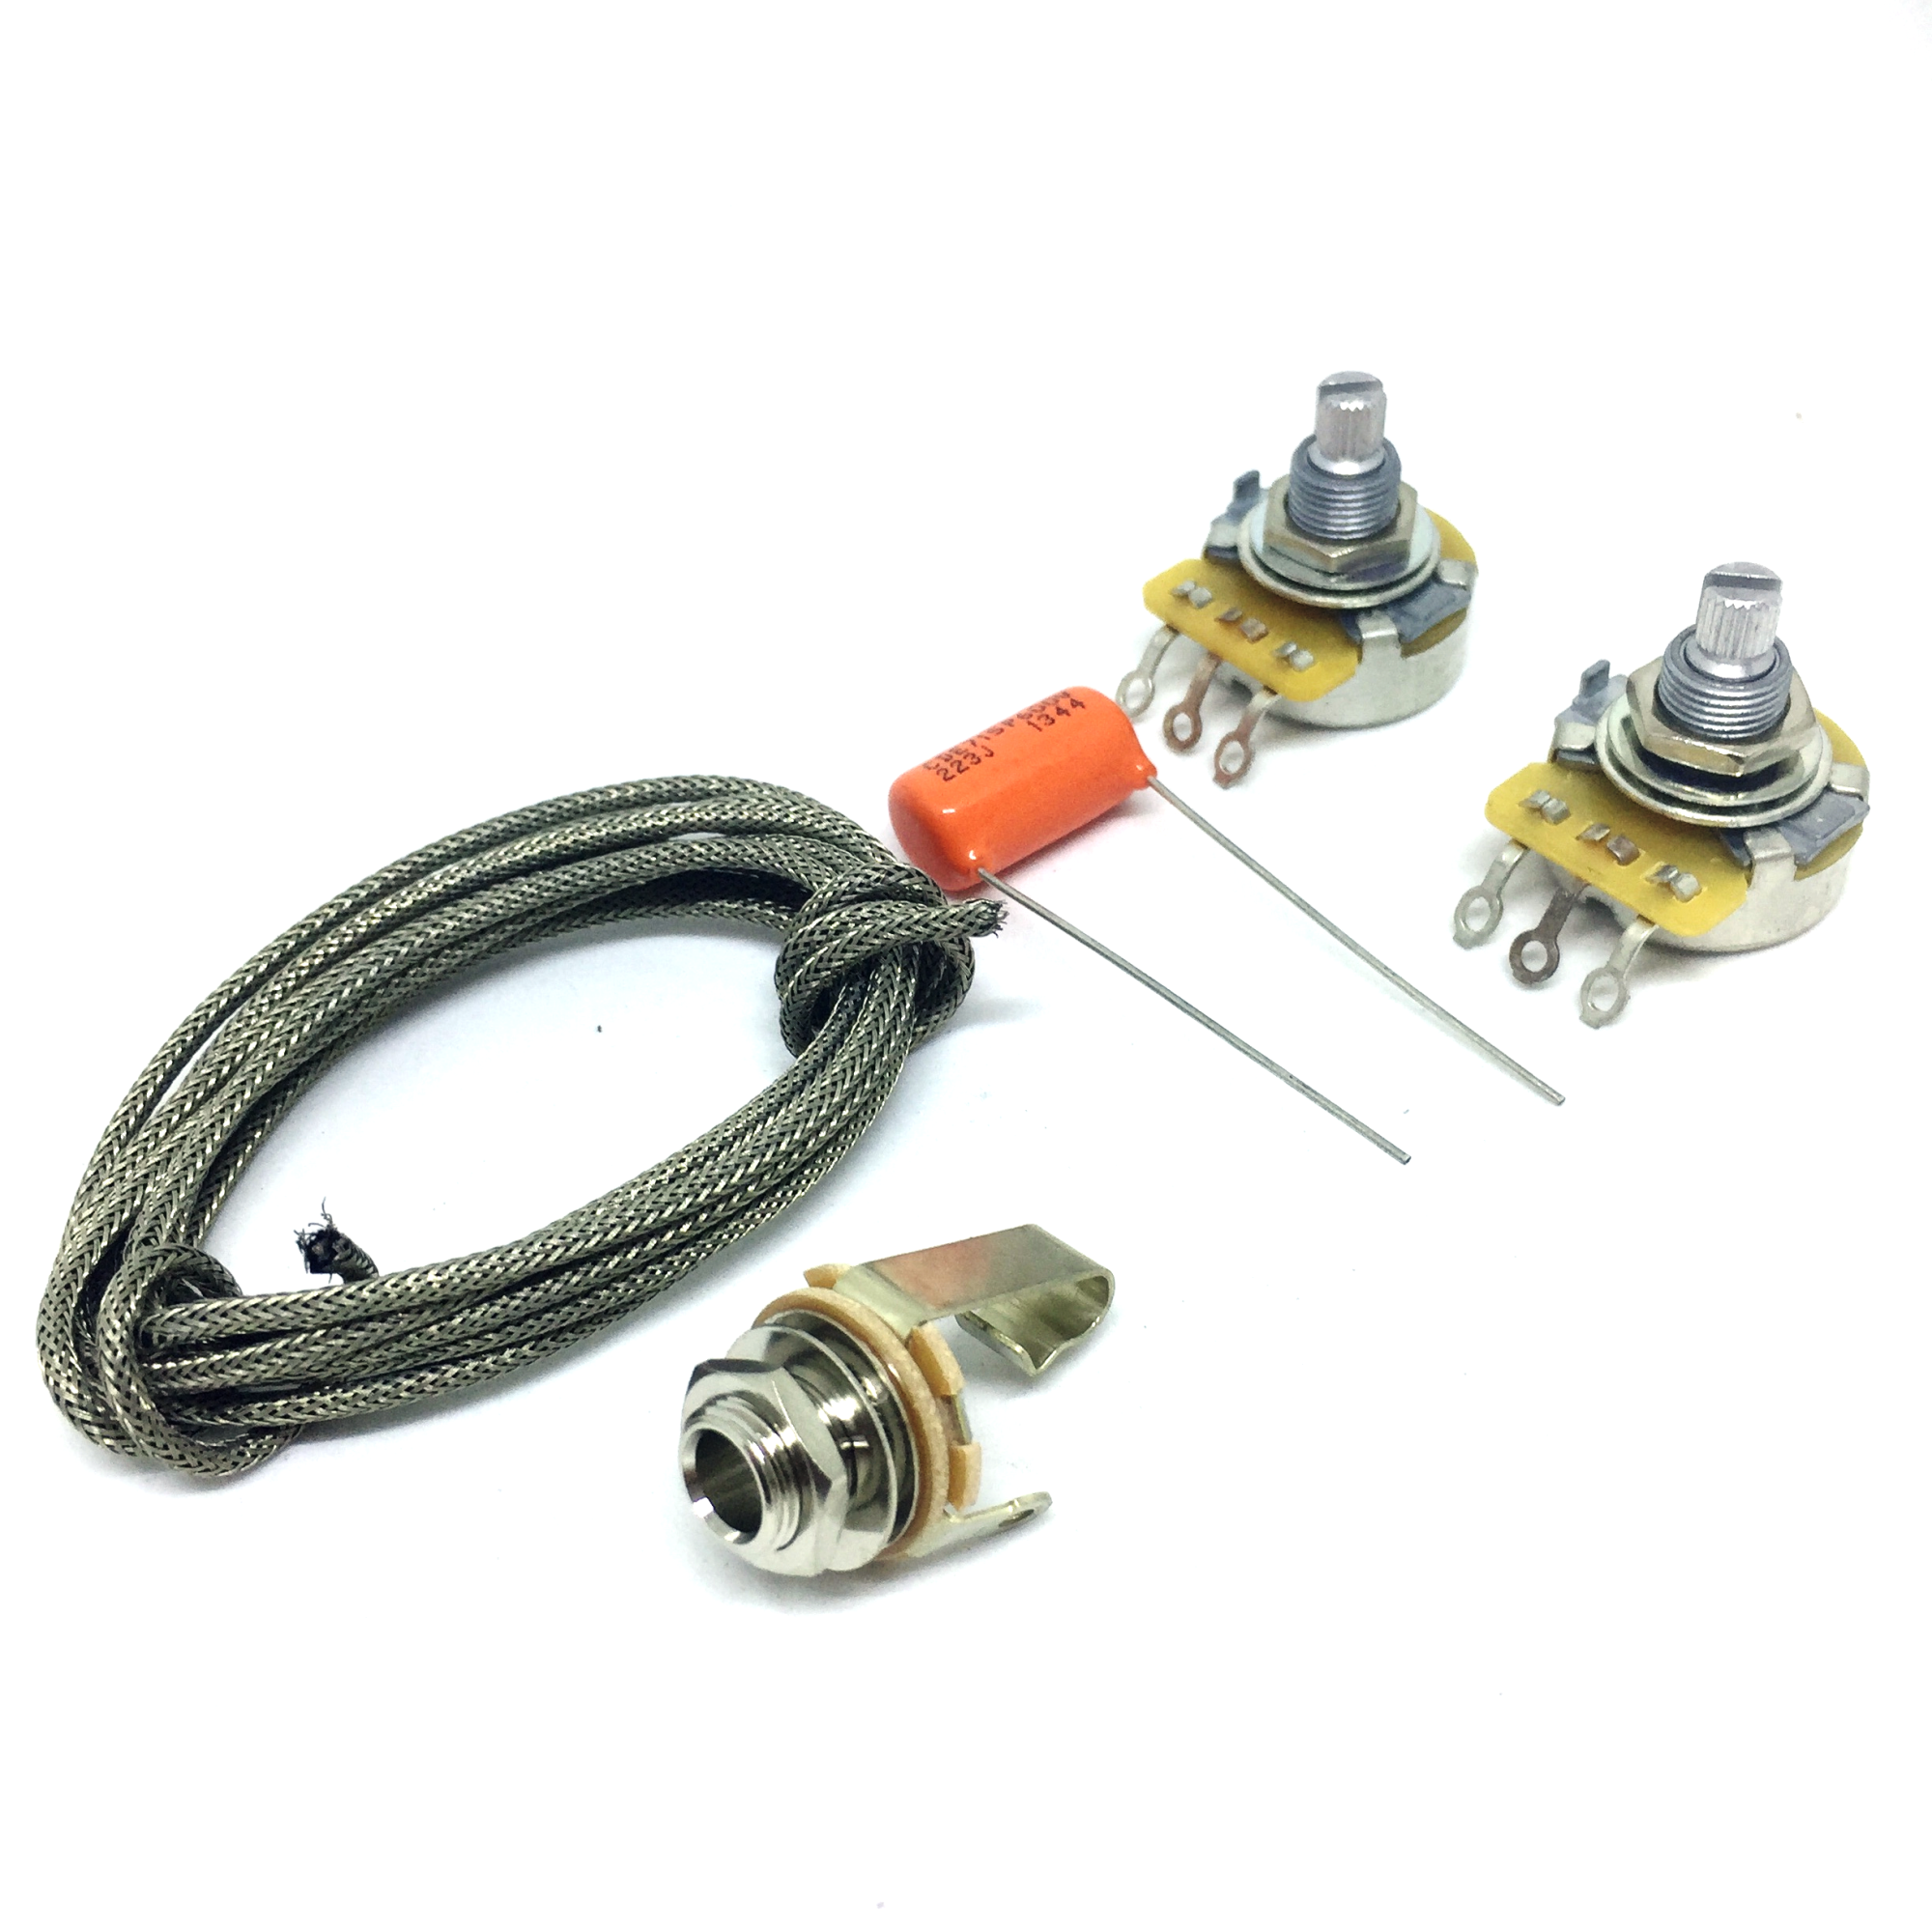 hight resolution of guitarslinger products les paul sg jnr wiring kit cts 500k pots les paul input jack wiring